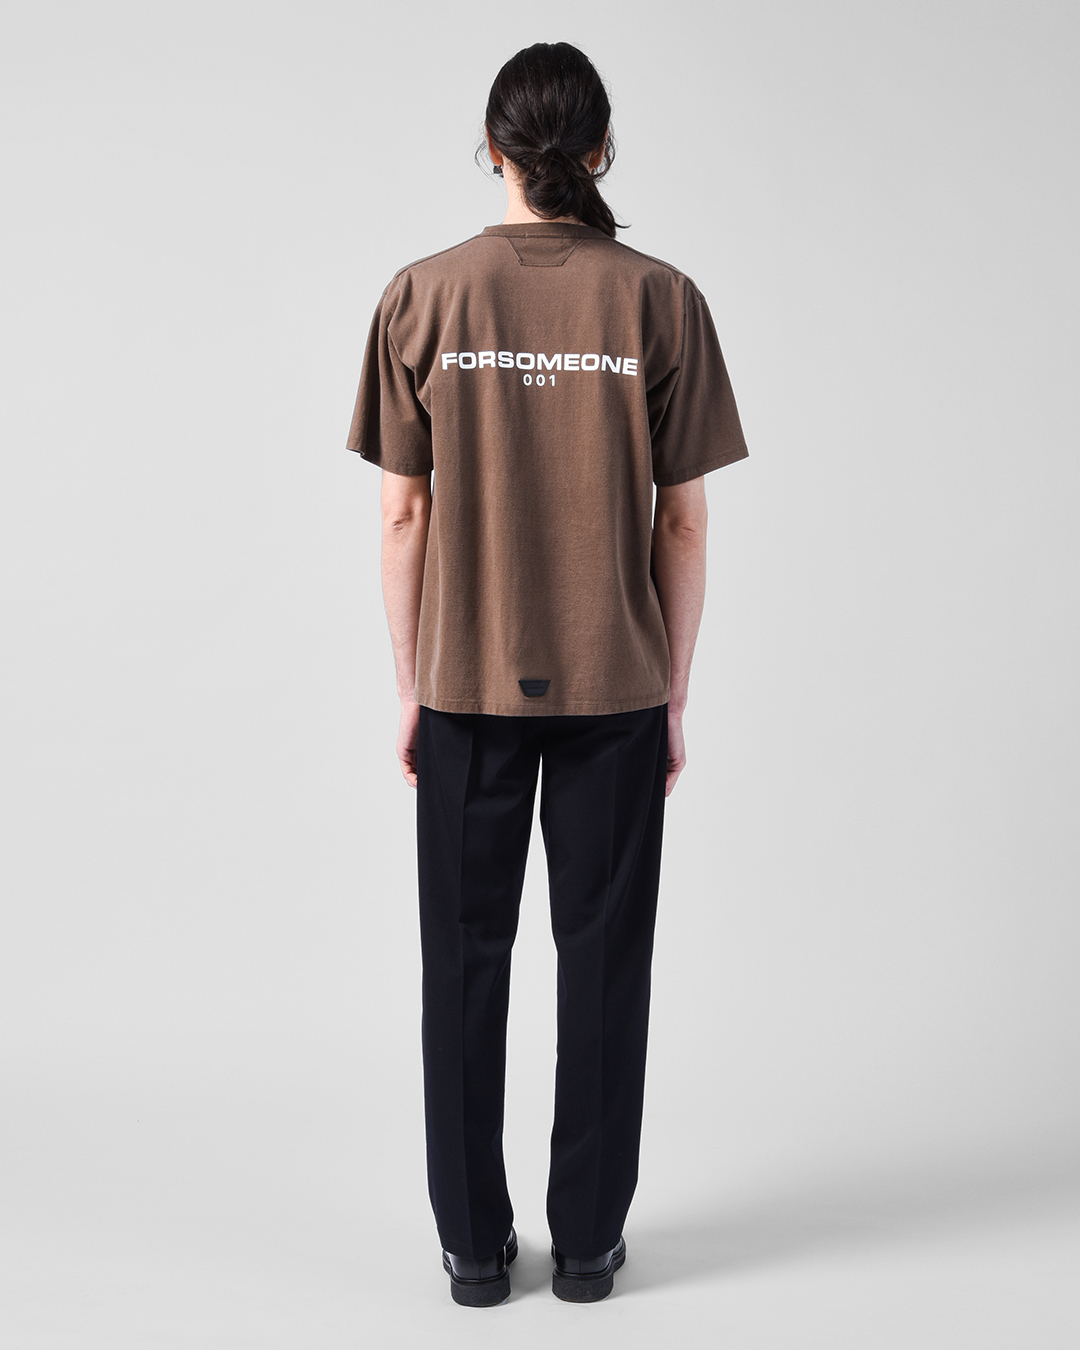 BACK FSO 001 TEE 2.0 詳細画像 Brown 10